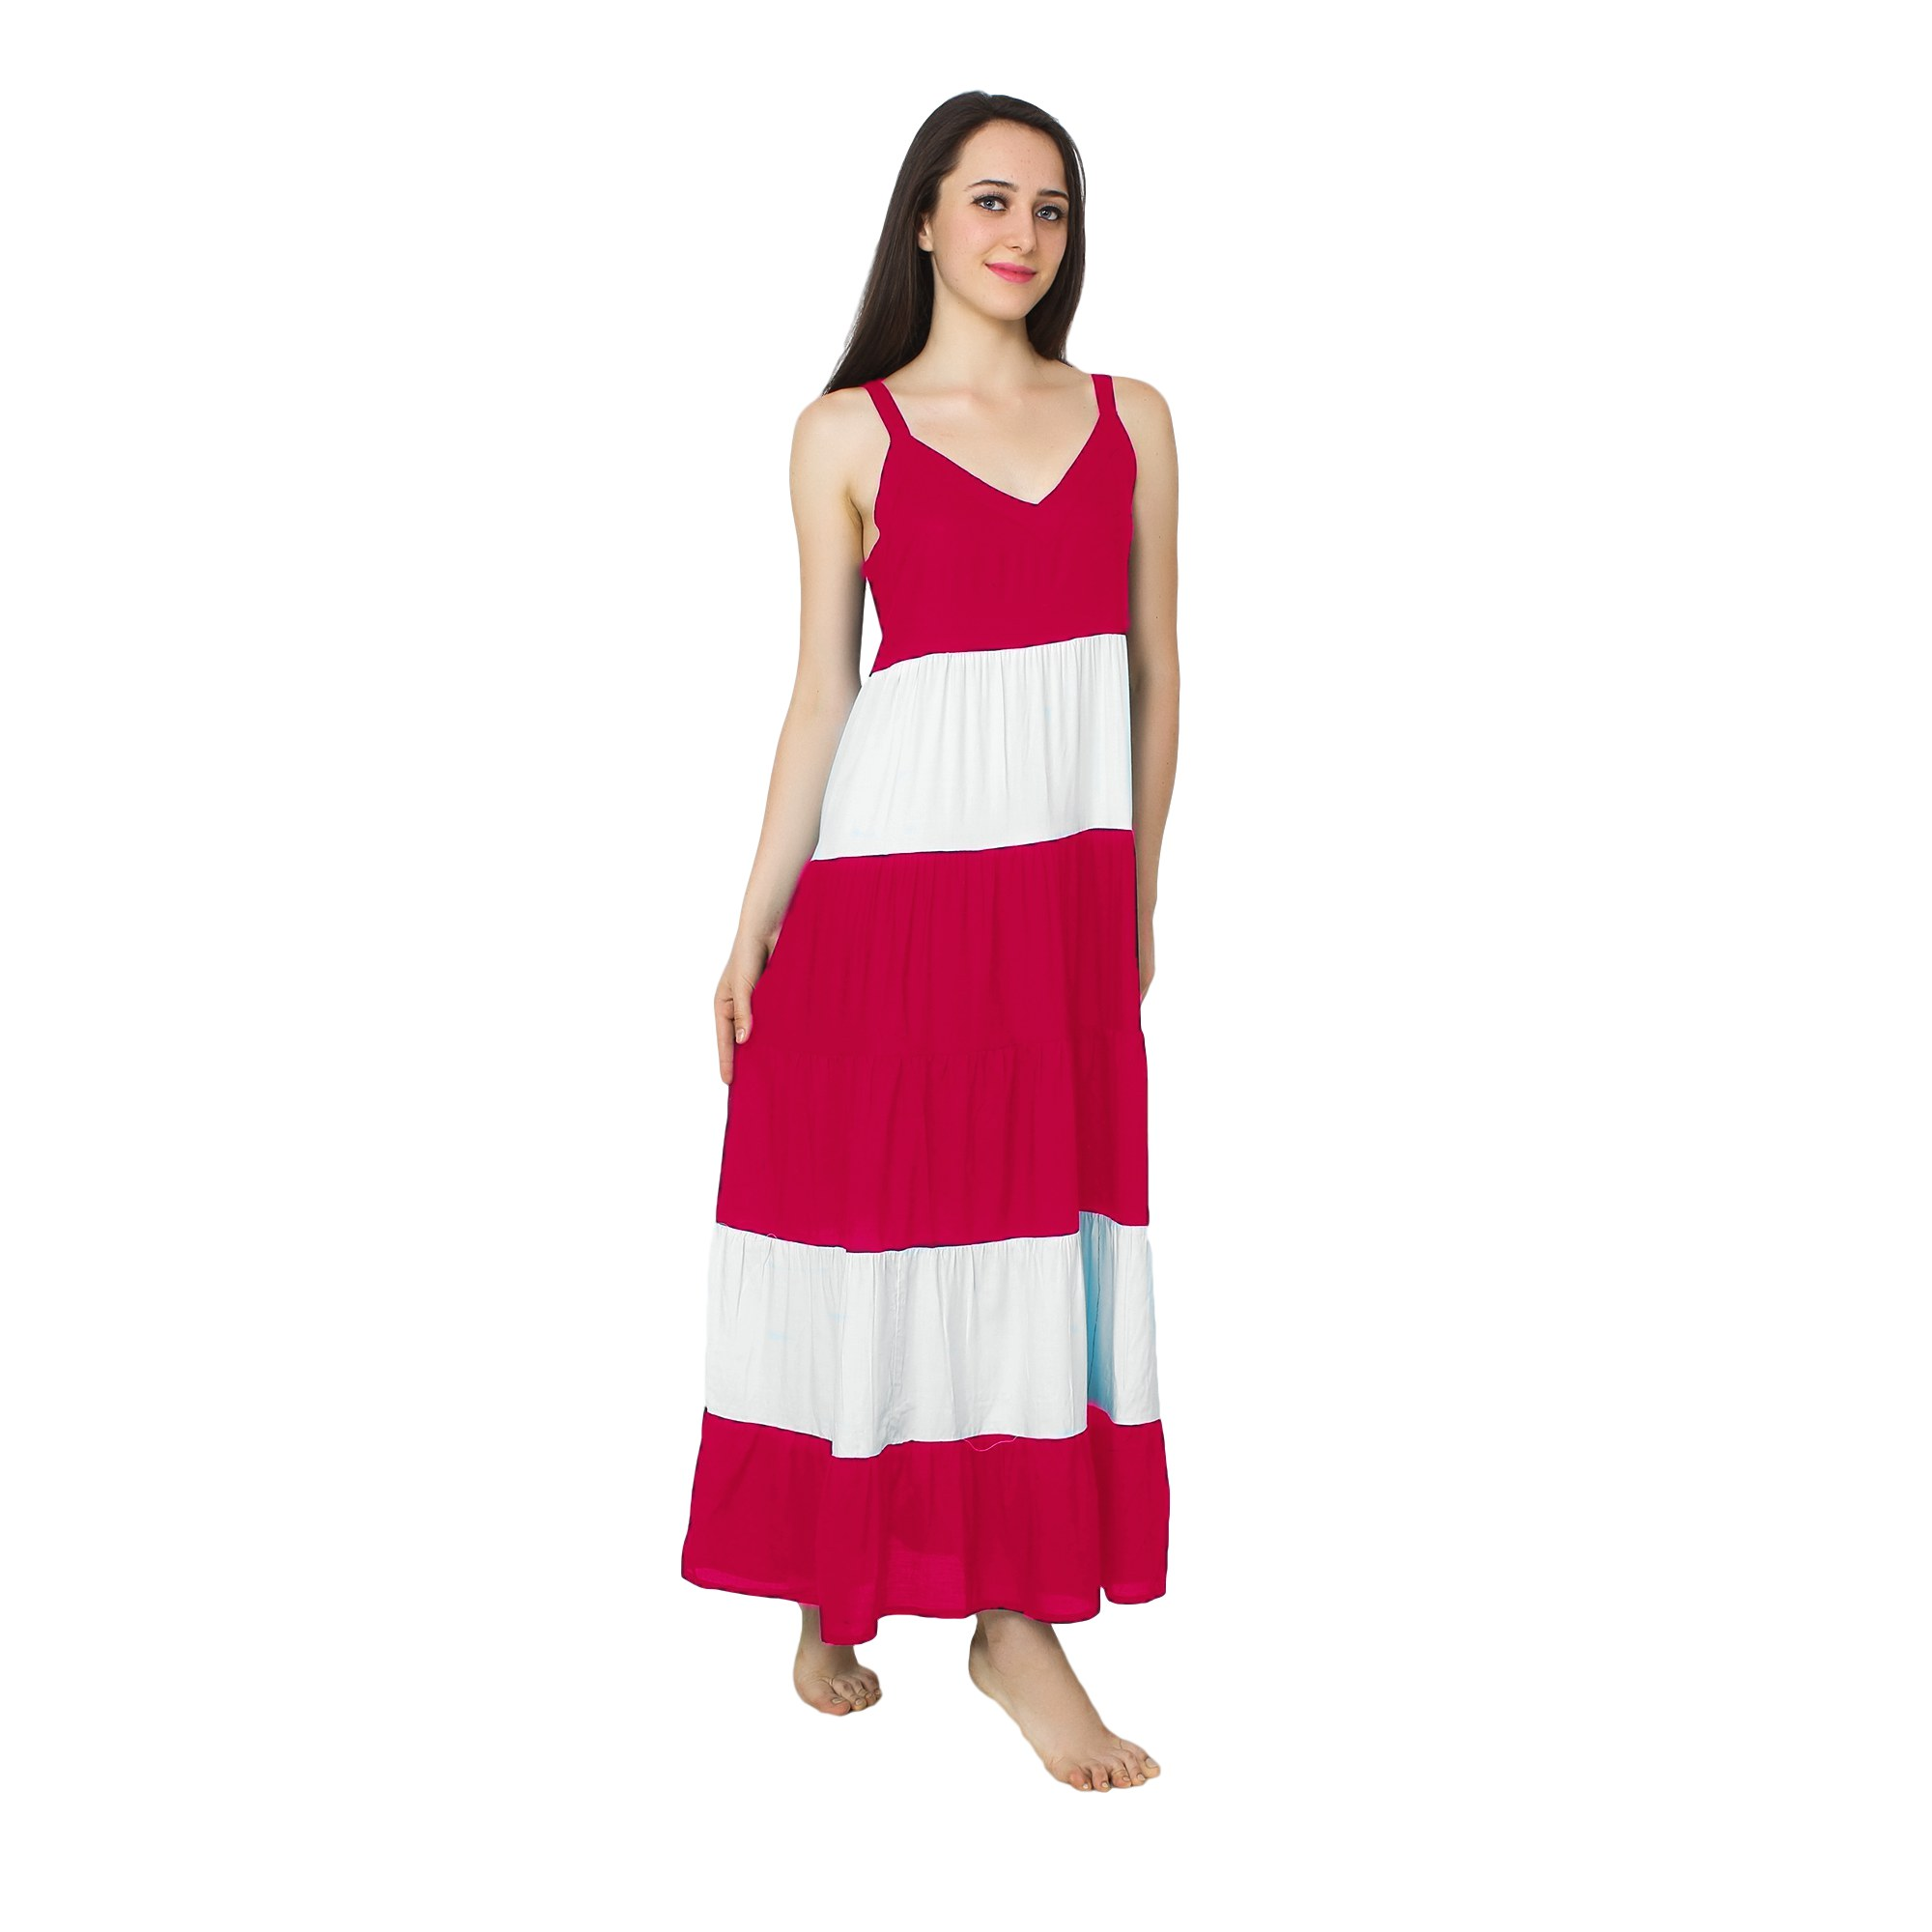 Spaghetti Strap Pleated Frilled Nighty Dress Gown in Fuchsia:White